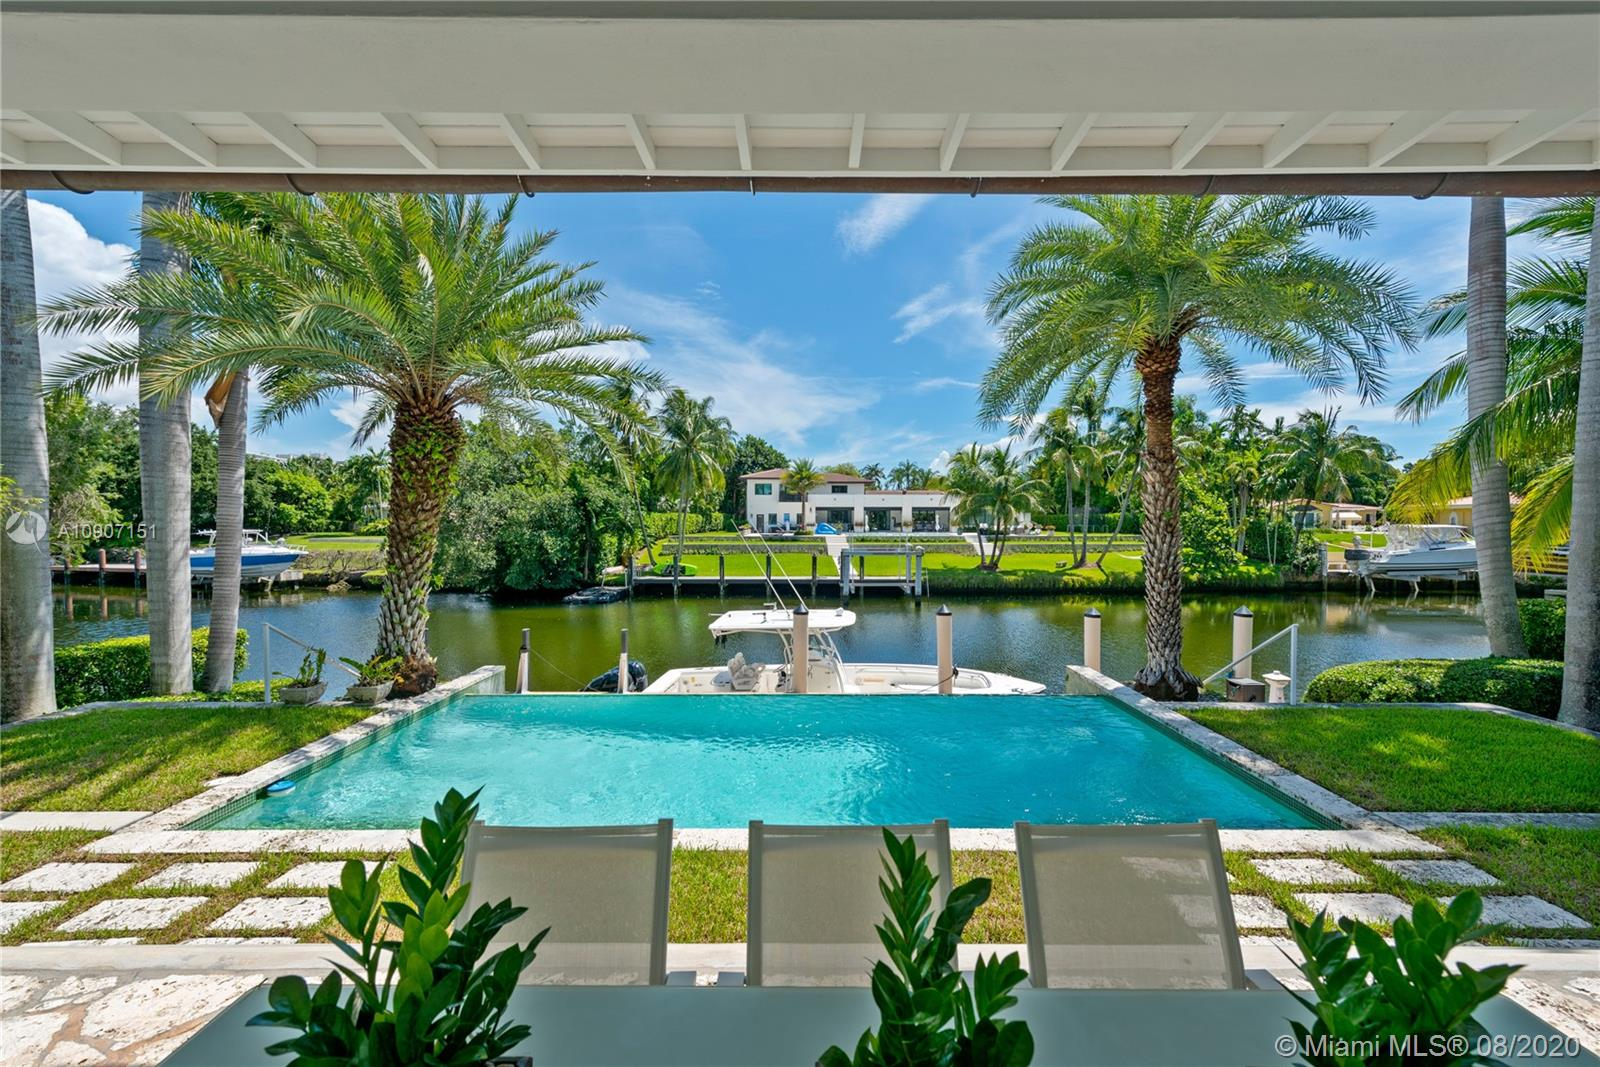 The waterfront home you've been waiting for is now available! Situated on a wide portion of the Mahi waterway in the South Gables, this one-story home was beautifully updated indoors and out. An open concept floorplan allows for water views from almost every room in the house, maximizing enjoyment of the waterfront lifestyle. A new kitchen features large chef's island, custom cabinetry & Thermador appliances, including a gas stove. Wall-to-wall glass doors open to the covered patio, built-in summer kitchen and sparkling infinity pool that appears to flow right into the canal. 3 bedrooms & 3 full bathrooms, including a master suite w/private sitting room overlooking the water. Brand new dock with concrete caps to accommodate a boat lift, impact windows & doors throughout, 2 car garage.